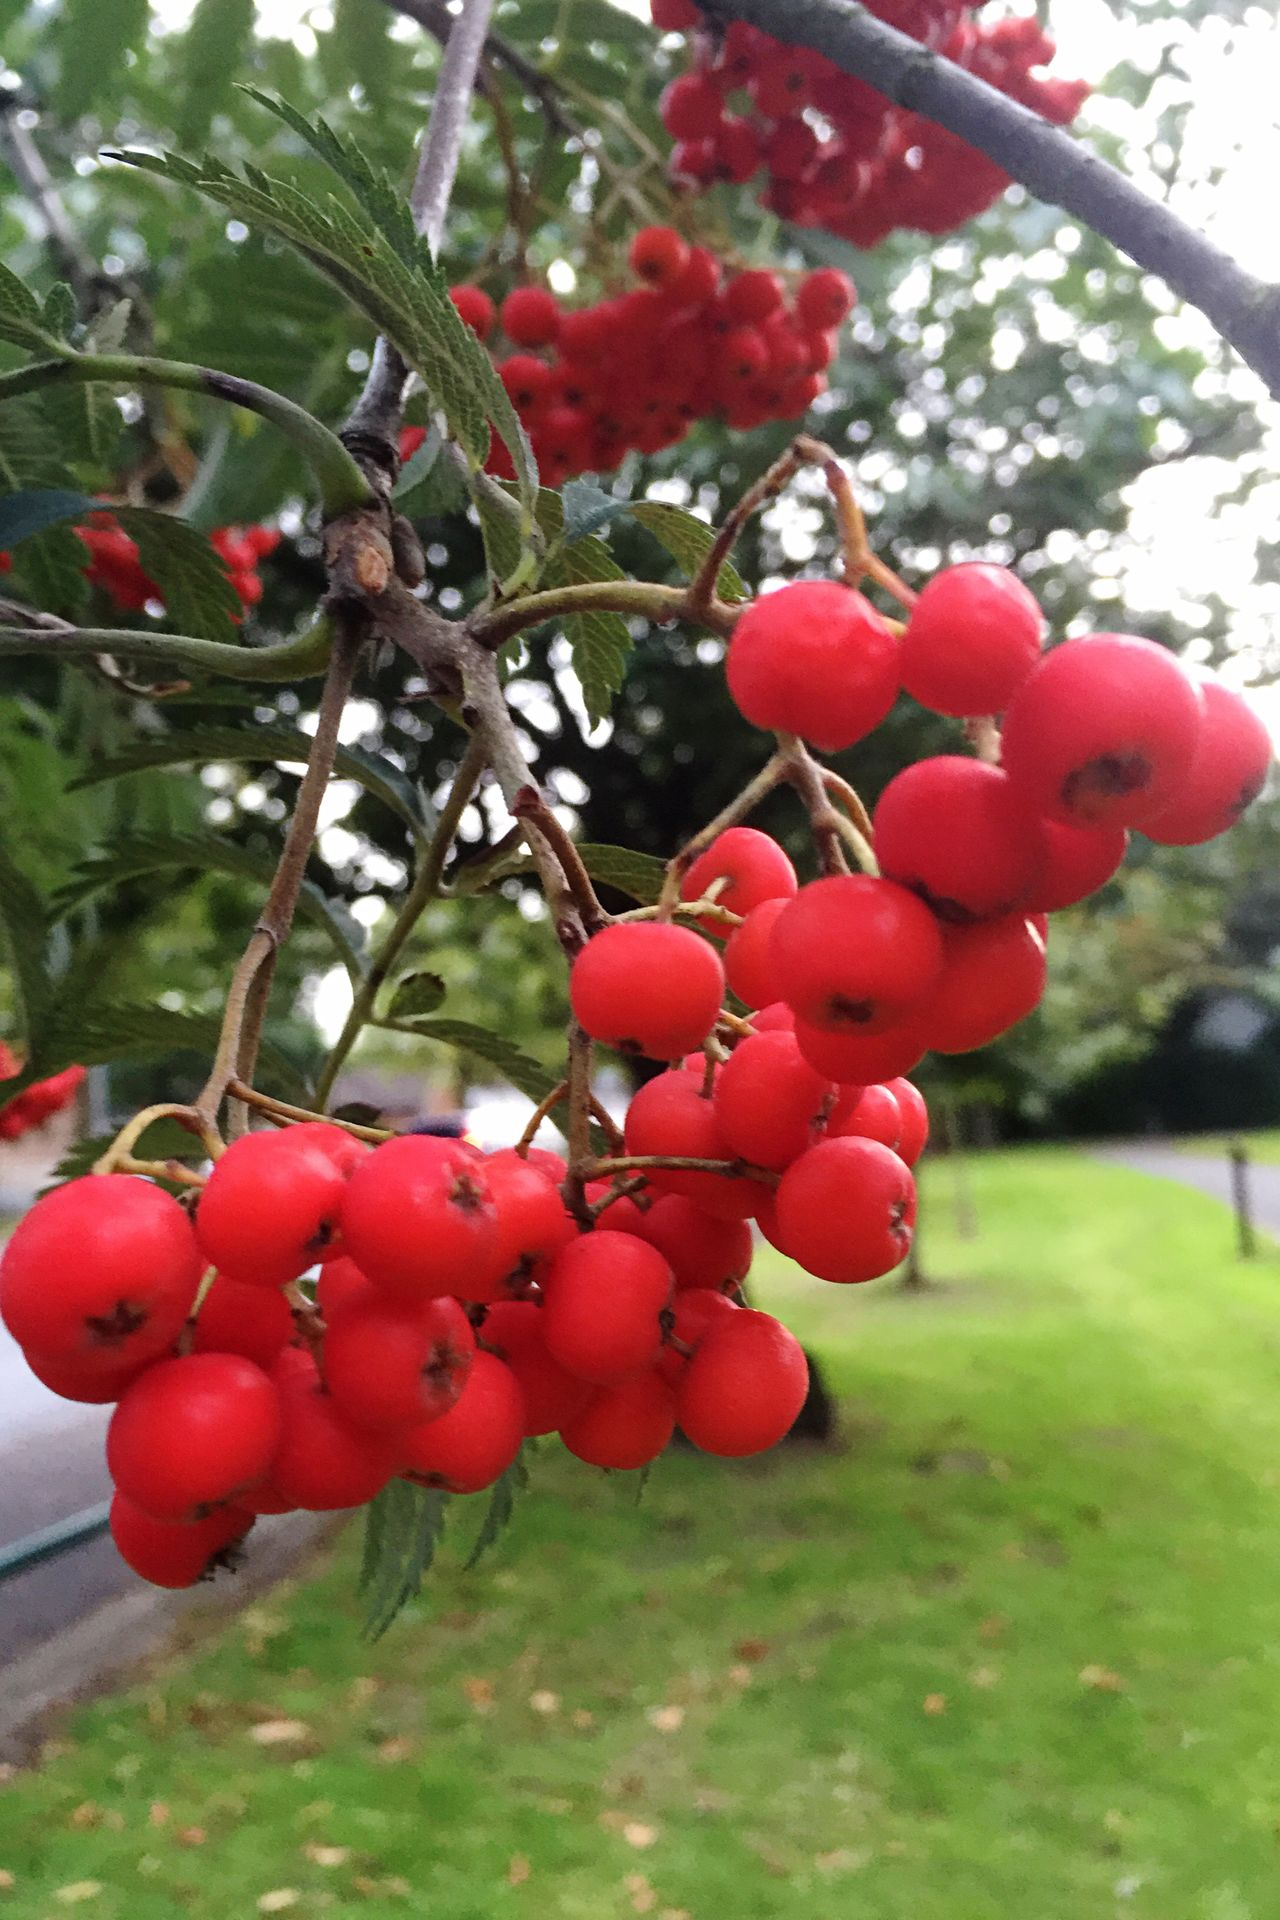 Red Fruit like Berries Close-up Selective Focus Hanging Focus On Foreground Vibrant Color Nature IPhoneography Iphonephotography